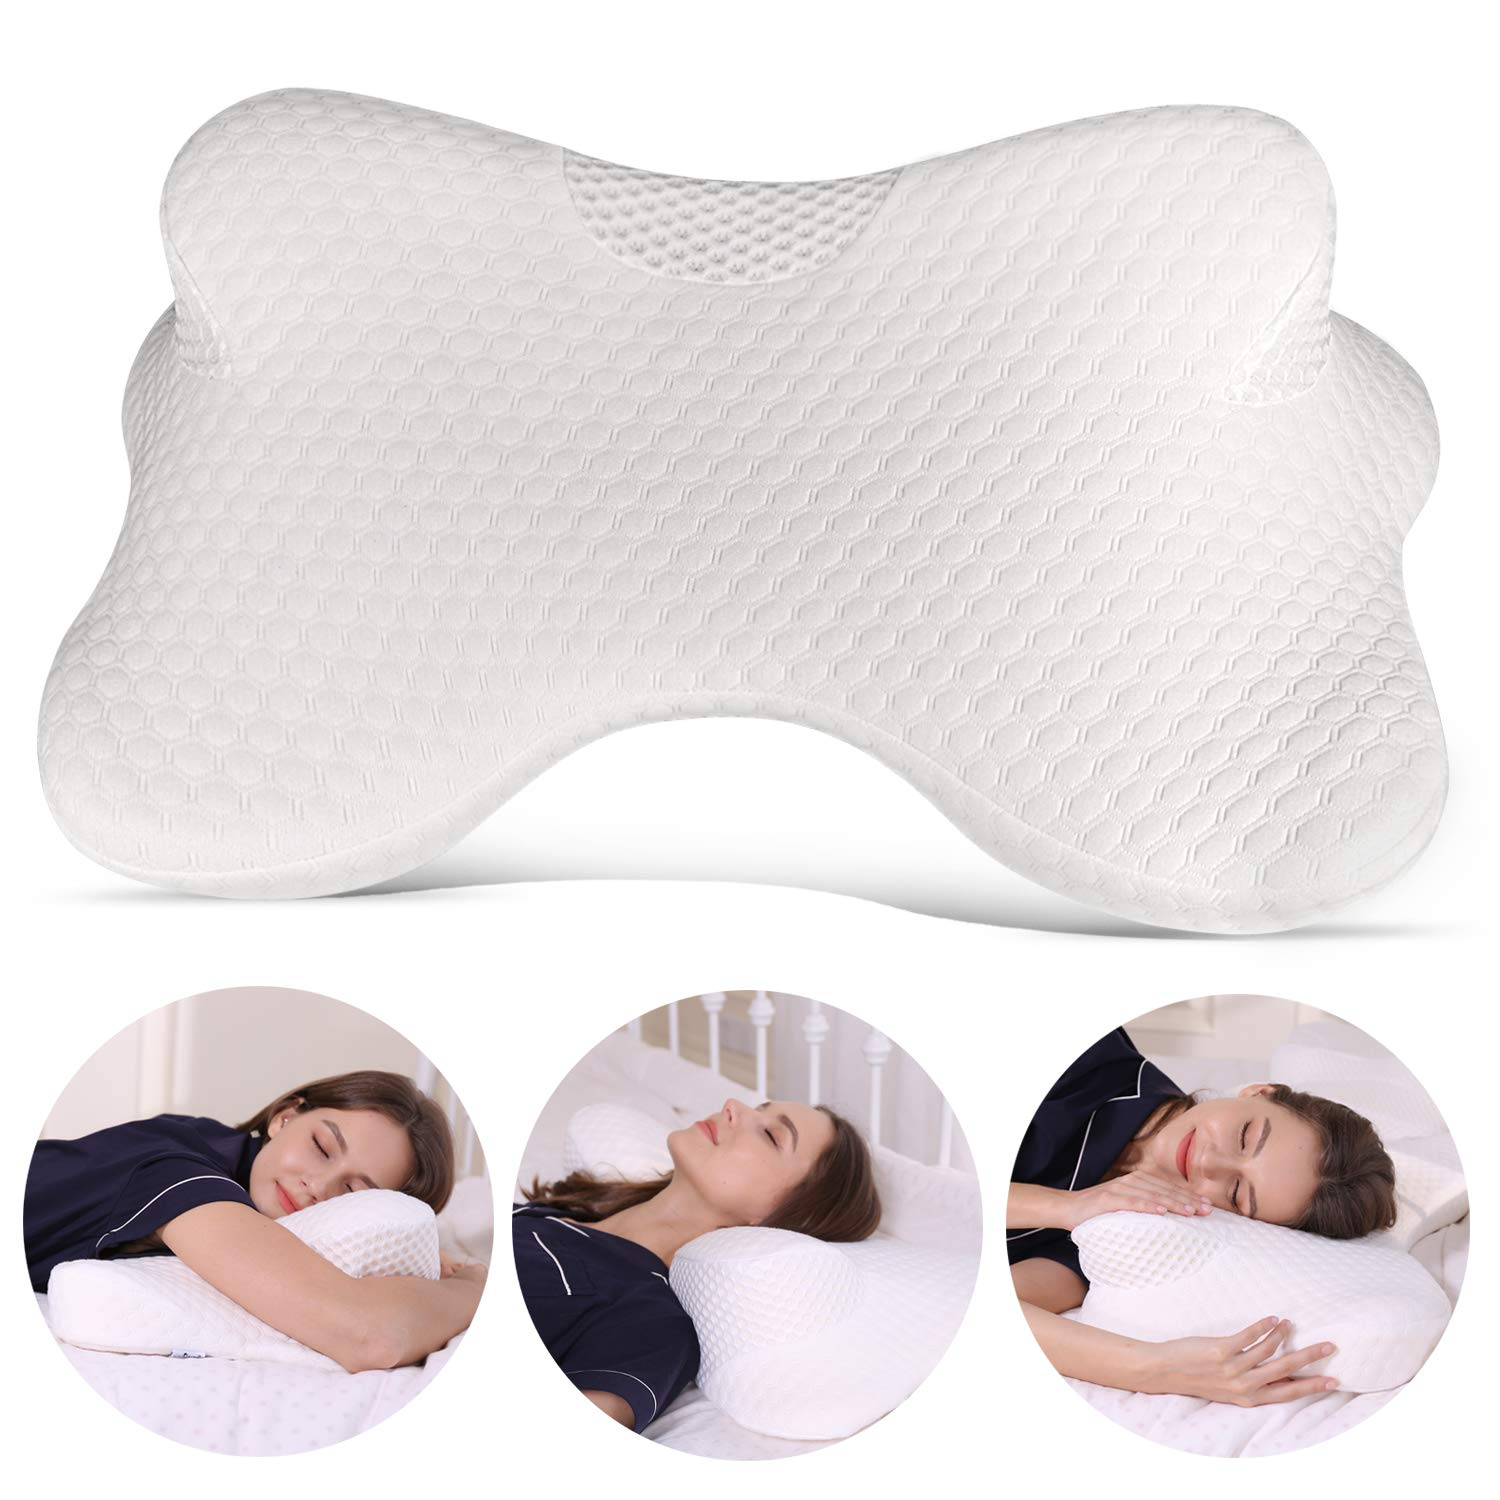 Coisum Stomach Sleeping Back Sleeping Cervical Pillow - Memory Foam Belly Sleeper Pillow for Neck and Shoulder Pain Relief - Orthopedic Ergonomic Pillow with Breathable Cover by Coisum